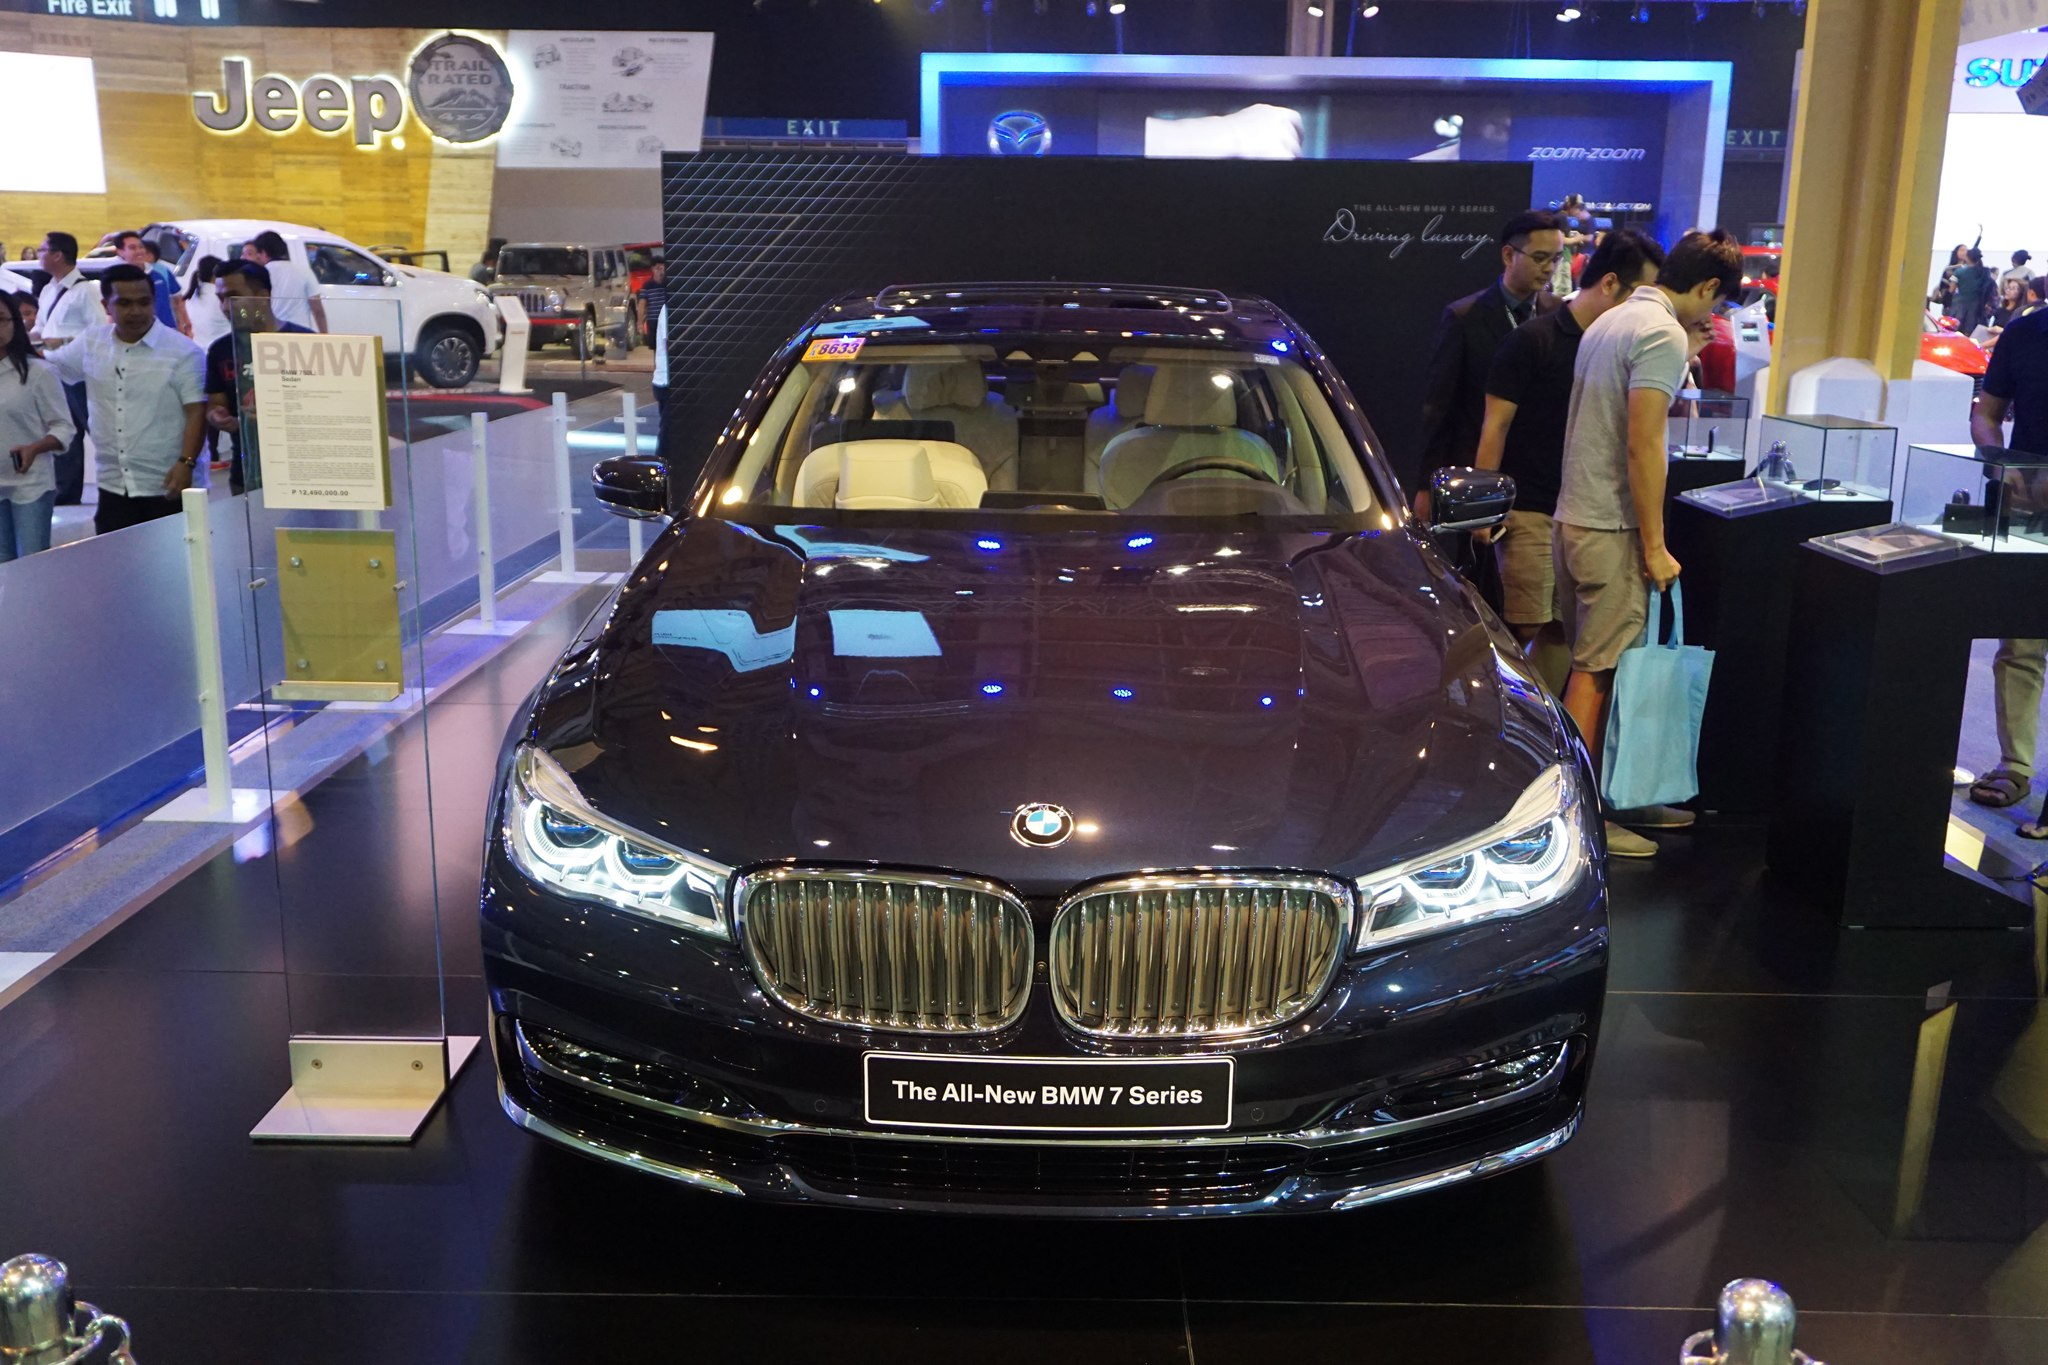 bmw-7-series-at-the-philippine-international-motor-show-2016-1